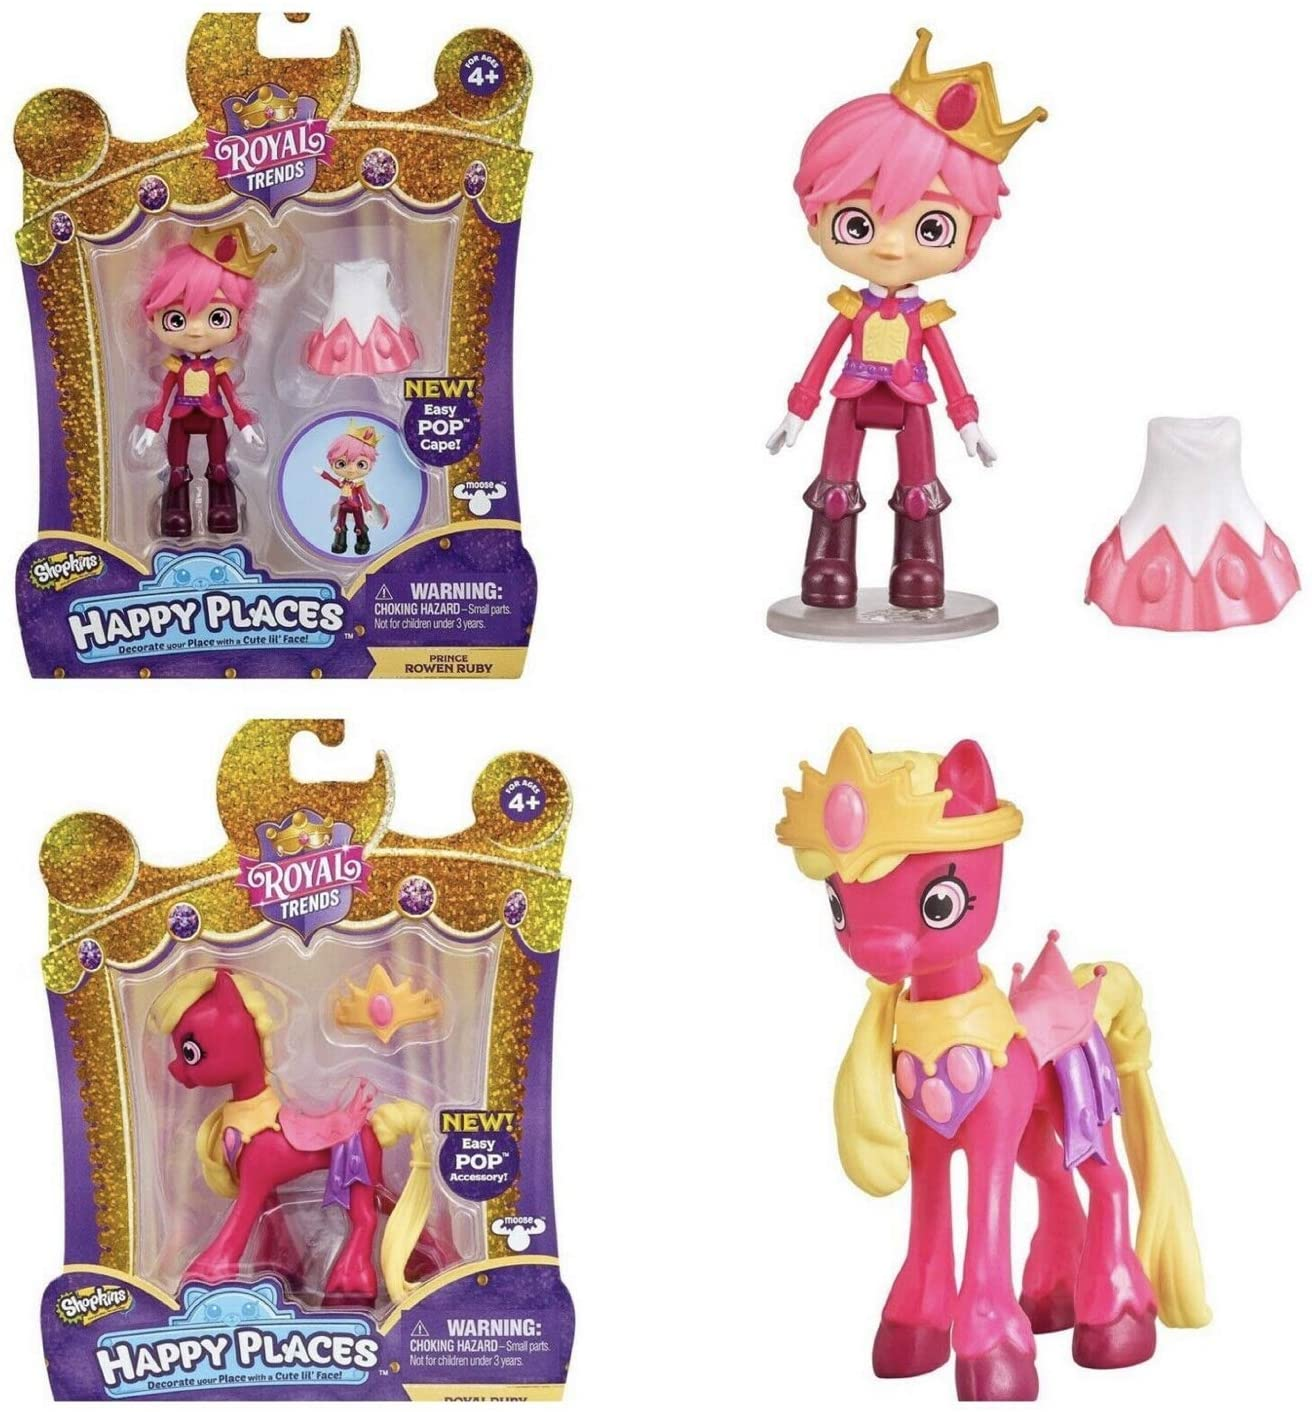 HAPPY PLACES Shopkins Royal Trends Prince Rowen Ruby and Royal Ruby Horse Bundle